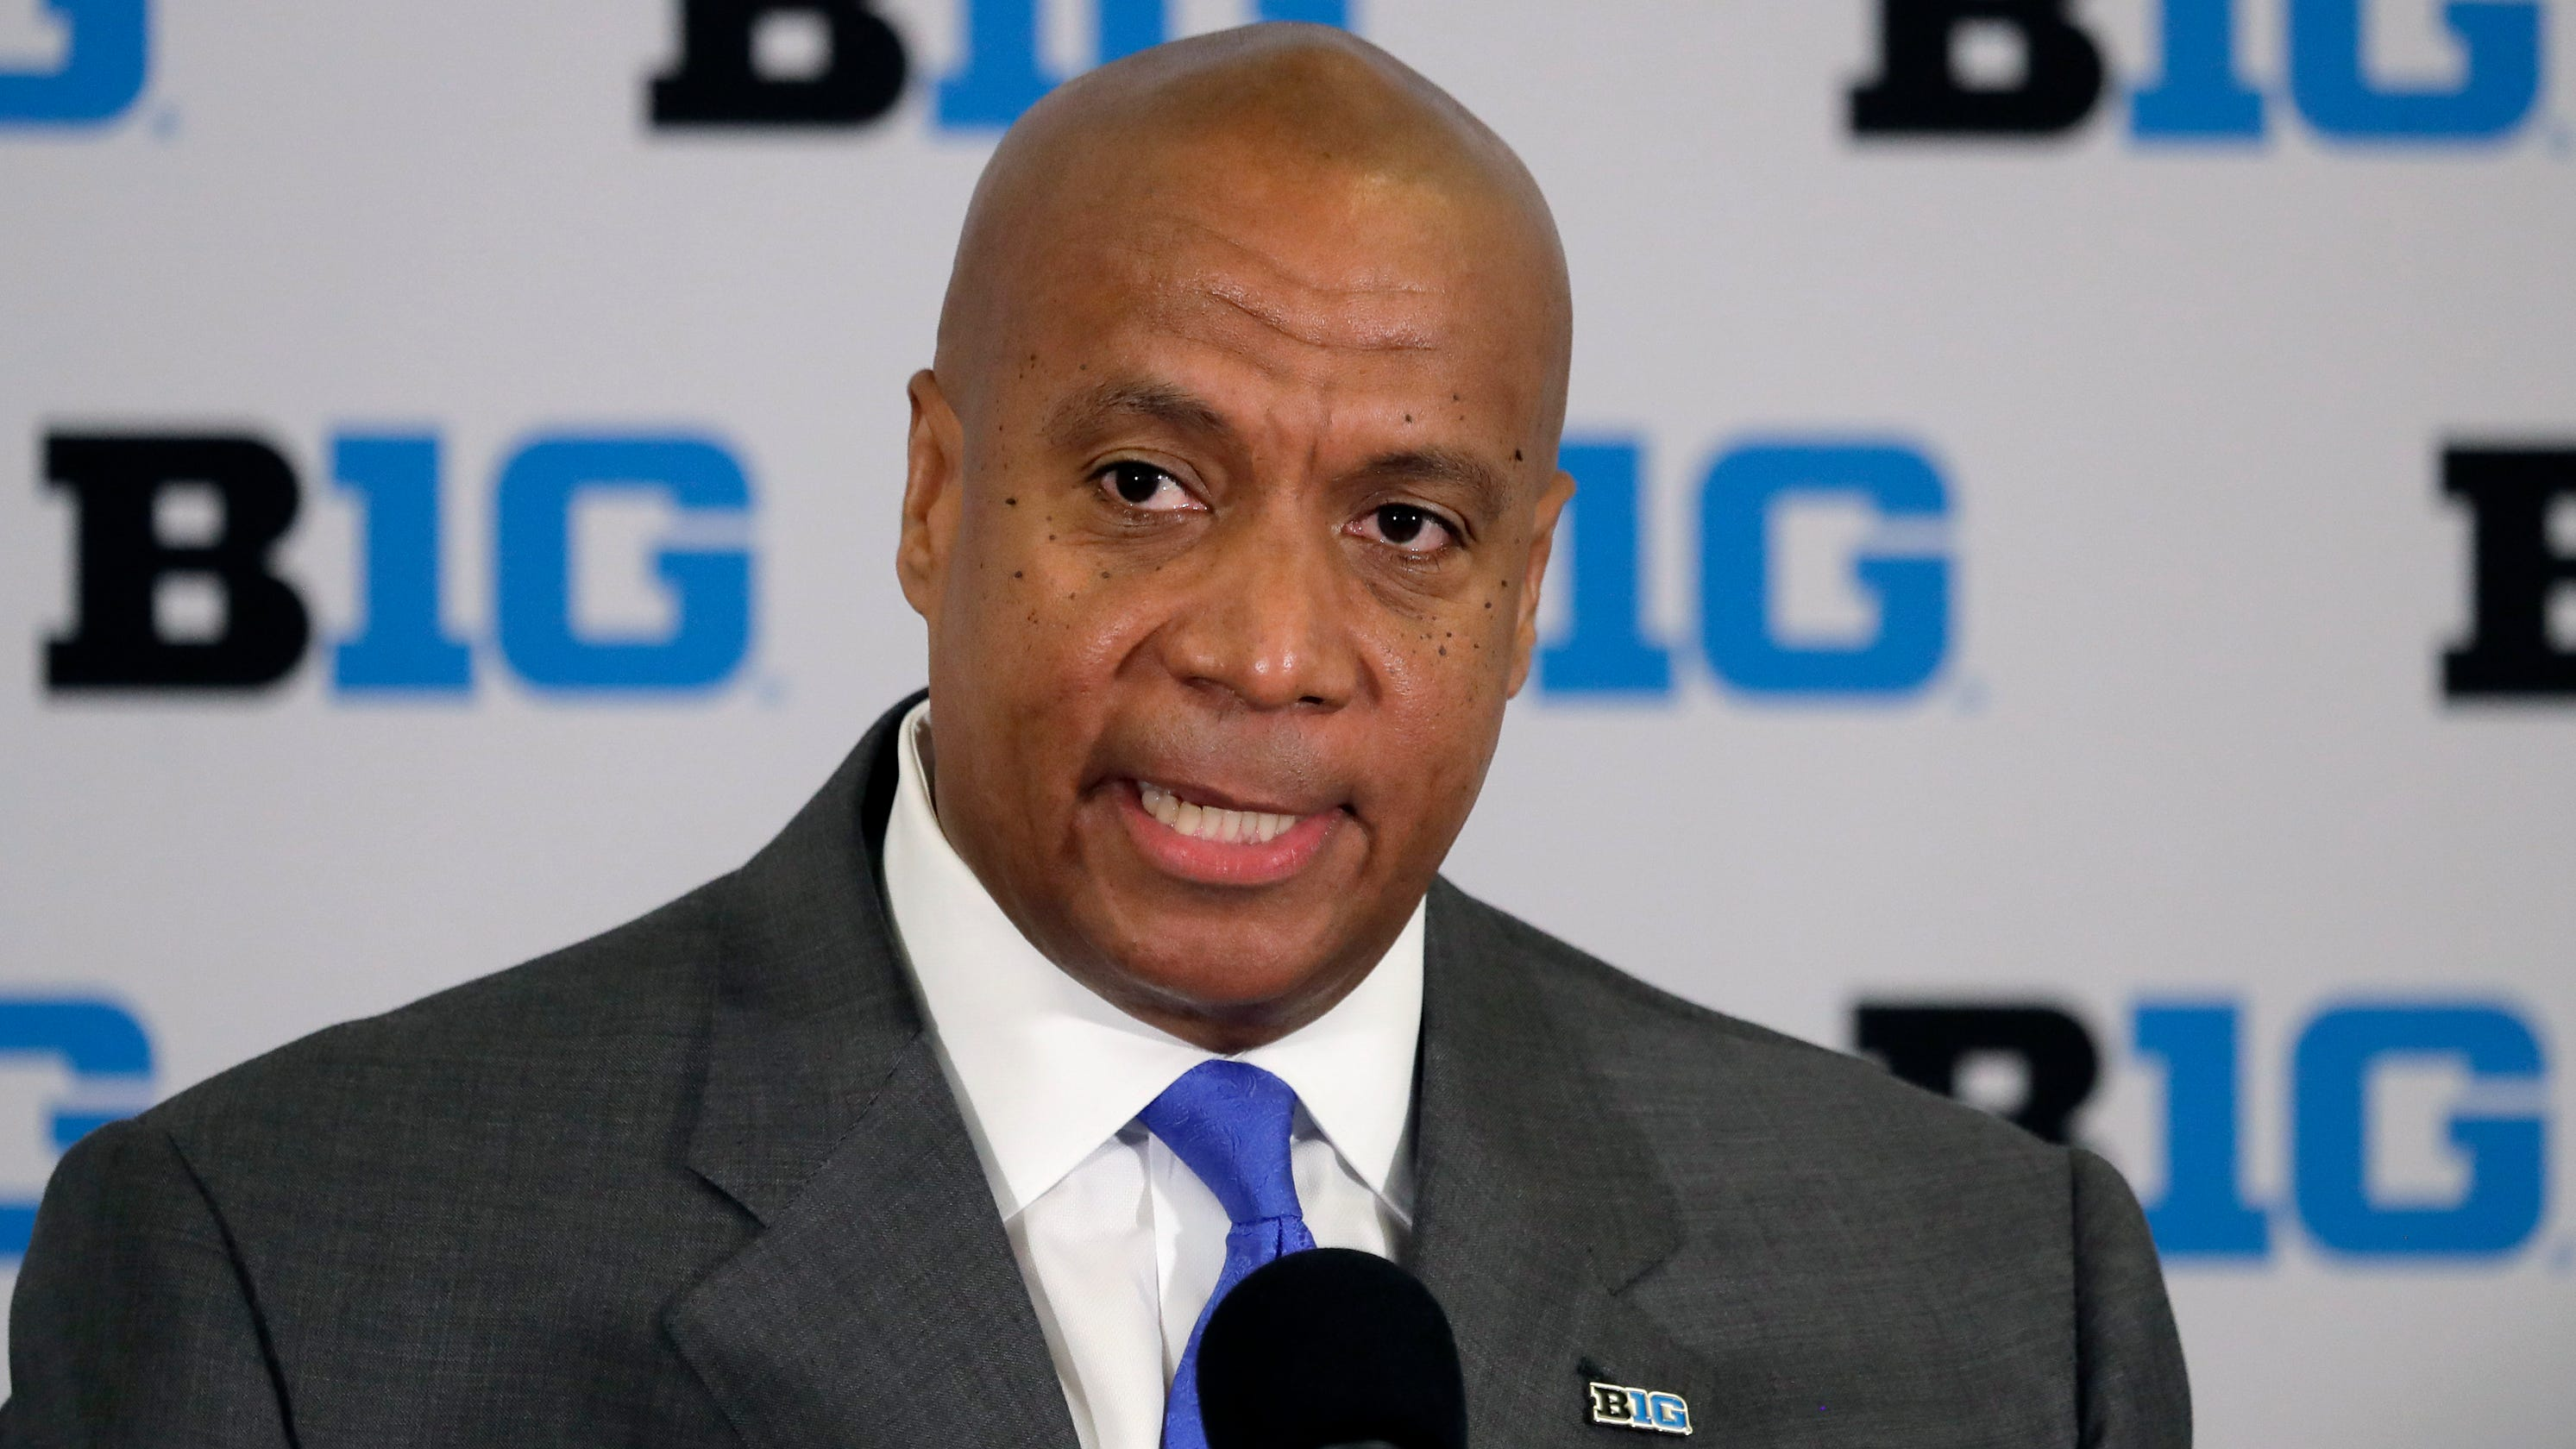 Big Ten commissioner: Decision to postpone fall sports - including football - won't be revisited